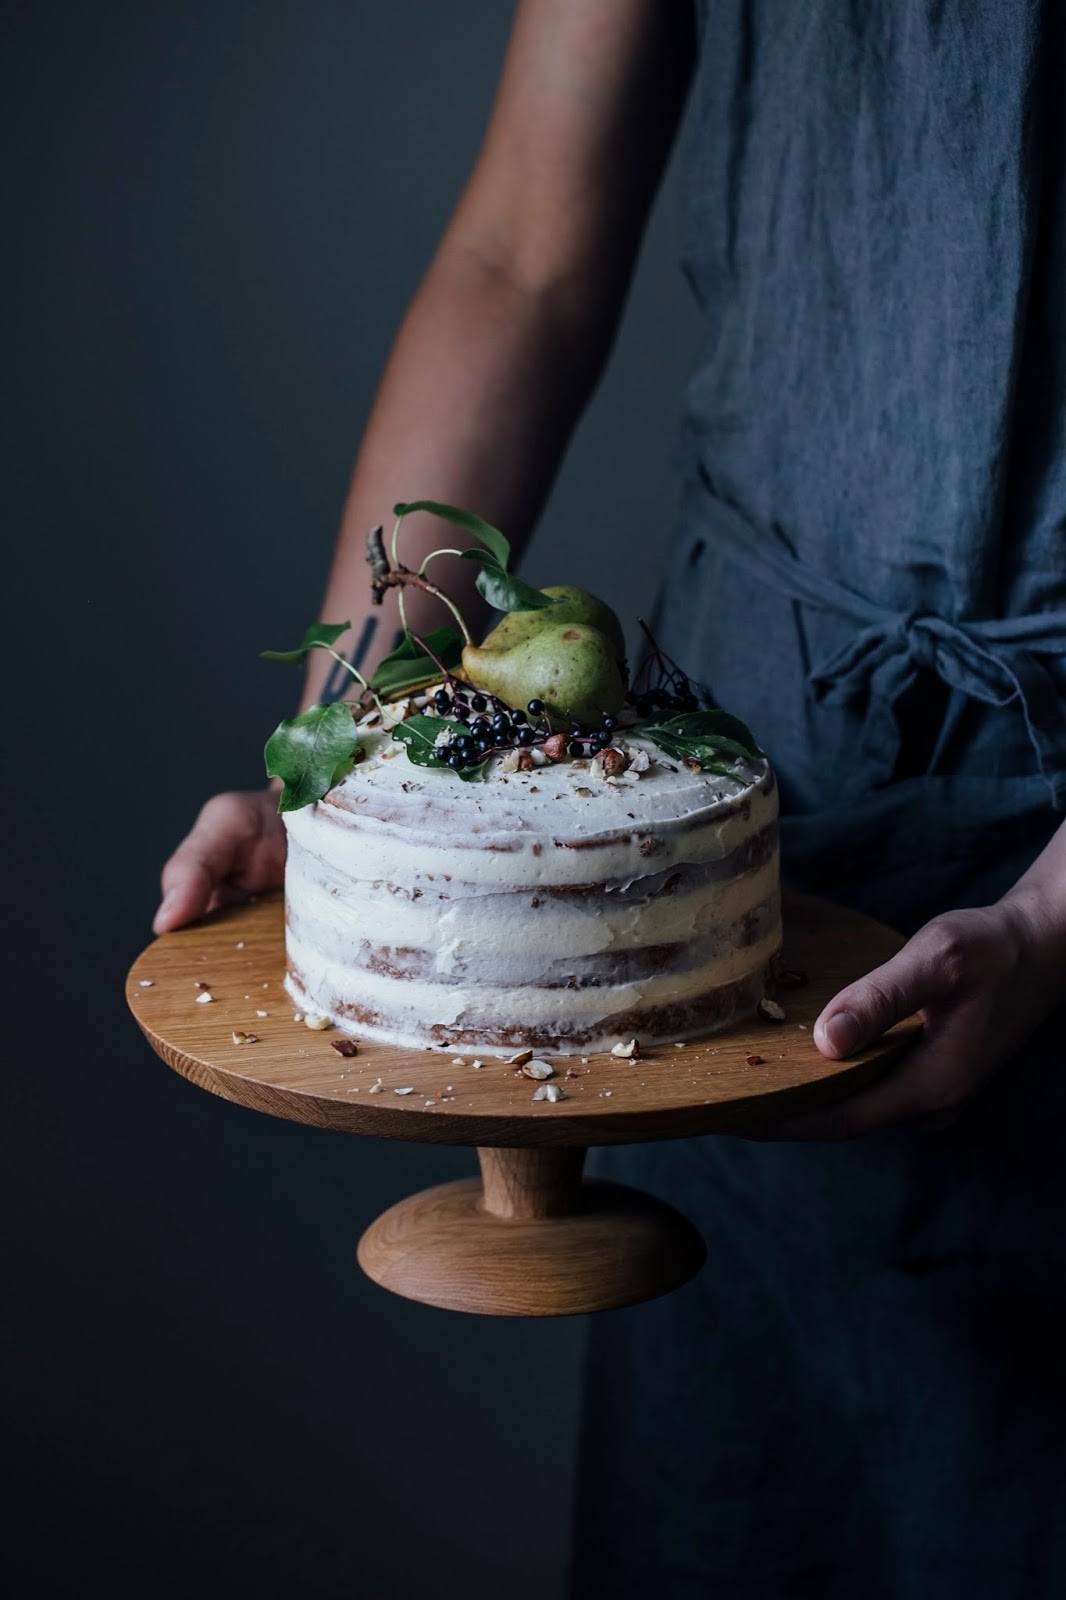 We made a Cake Stand with Nutsandwoods & a gluten-free Elderberry-Pear-Hazelnut Cake